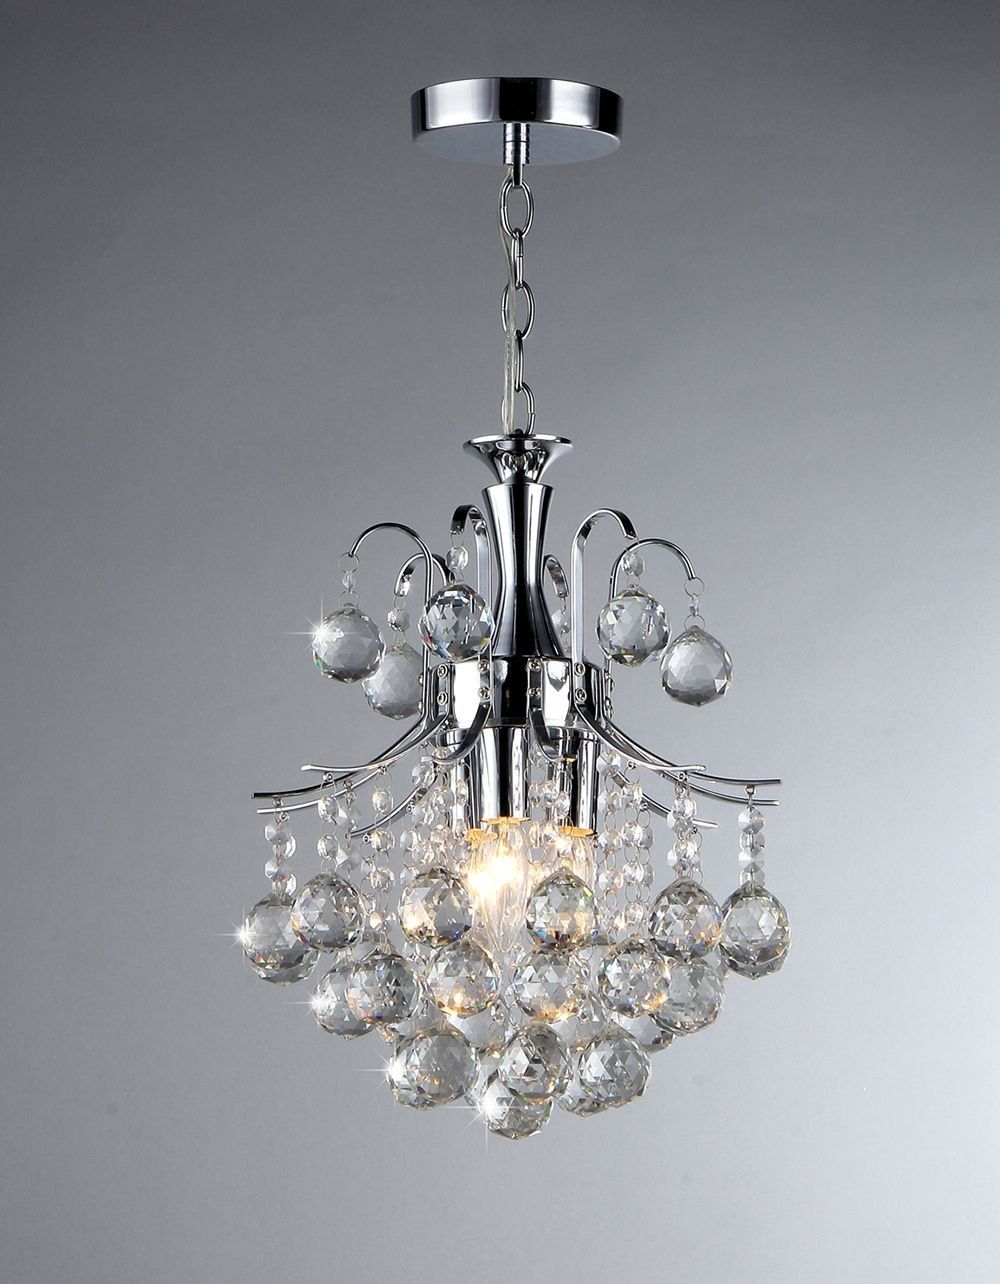 Illuminate your home with this dazzling 3-light crystal chandelier. This elegant lighting fixture is perfect for any room that needs an extra sparkle.